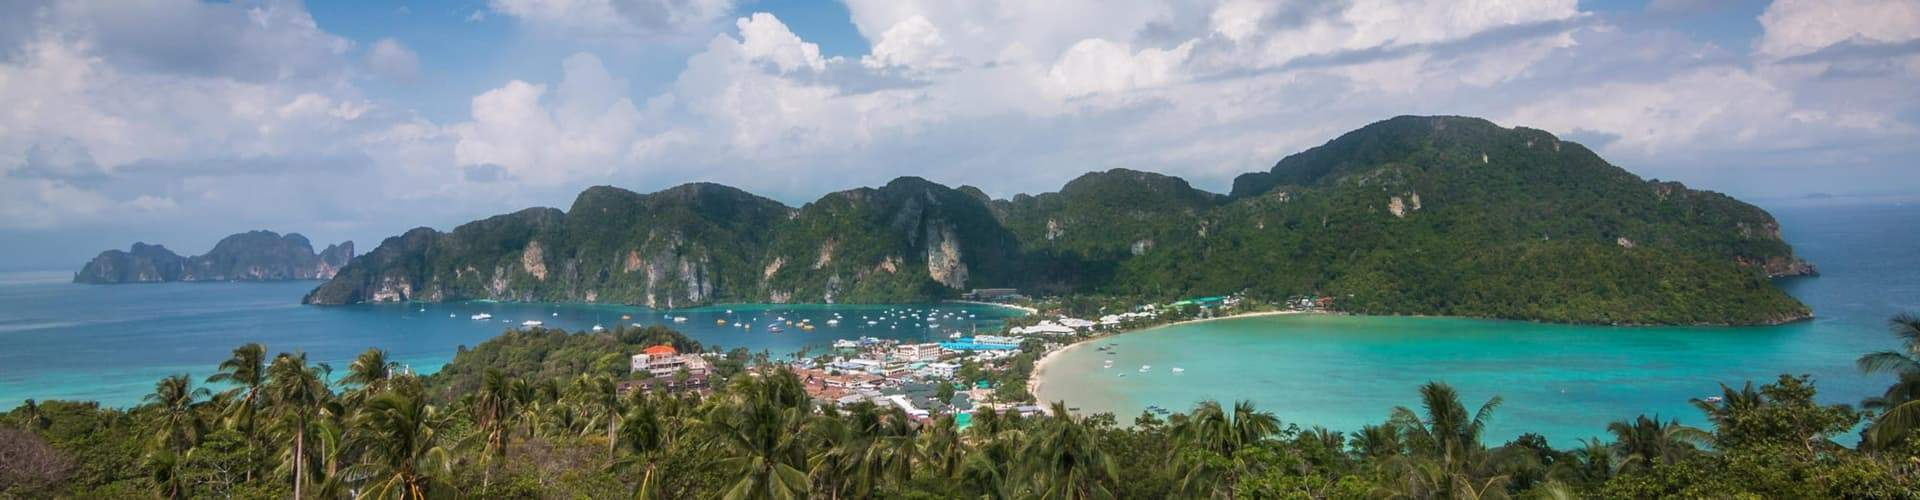 view of phi phi island